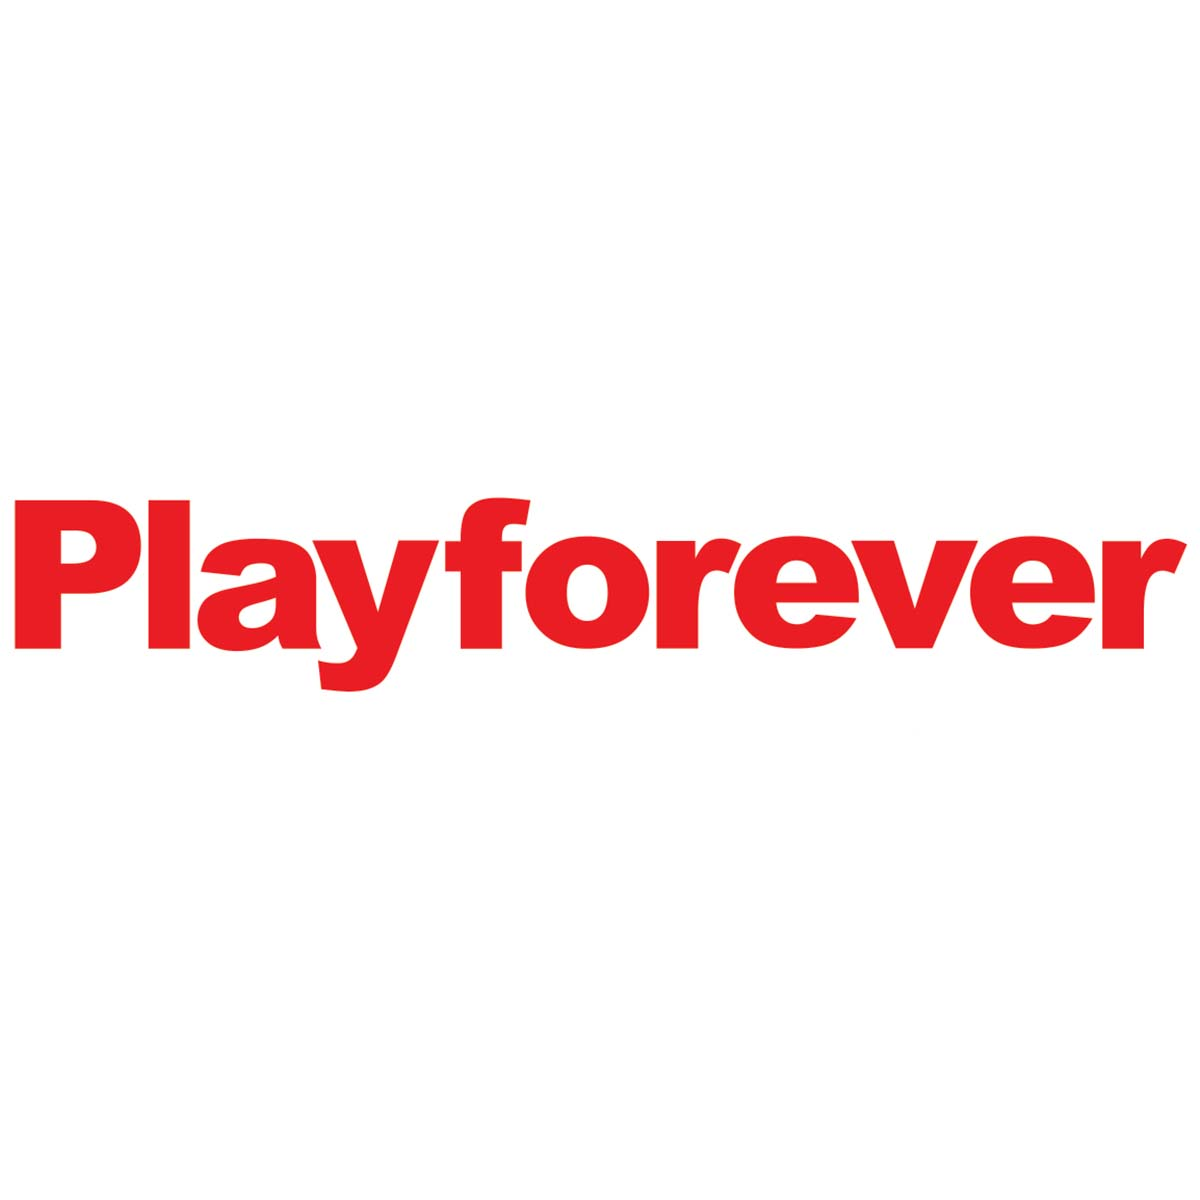 Playforever - Categorie Afbeelding